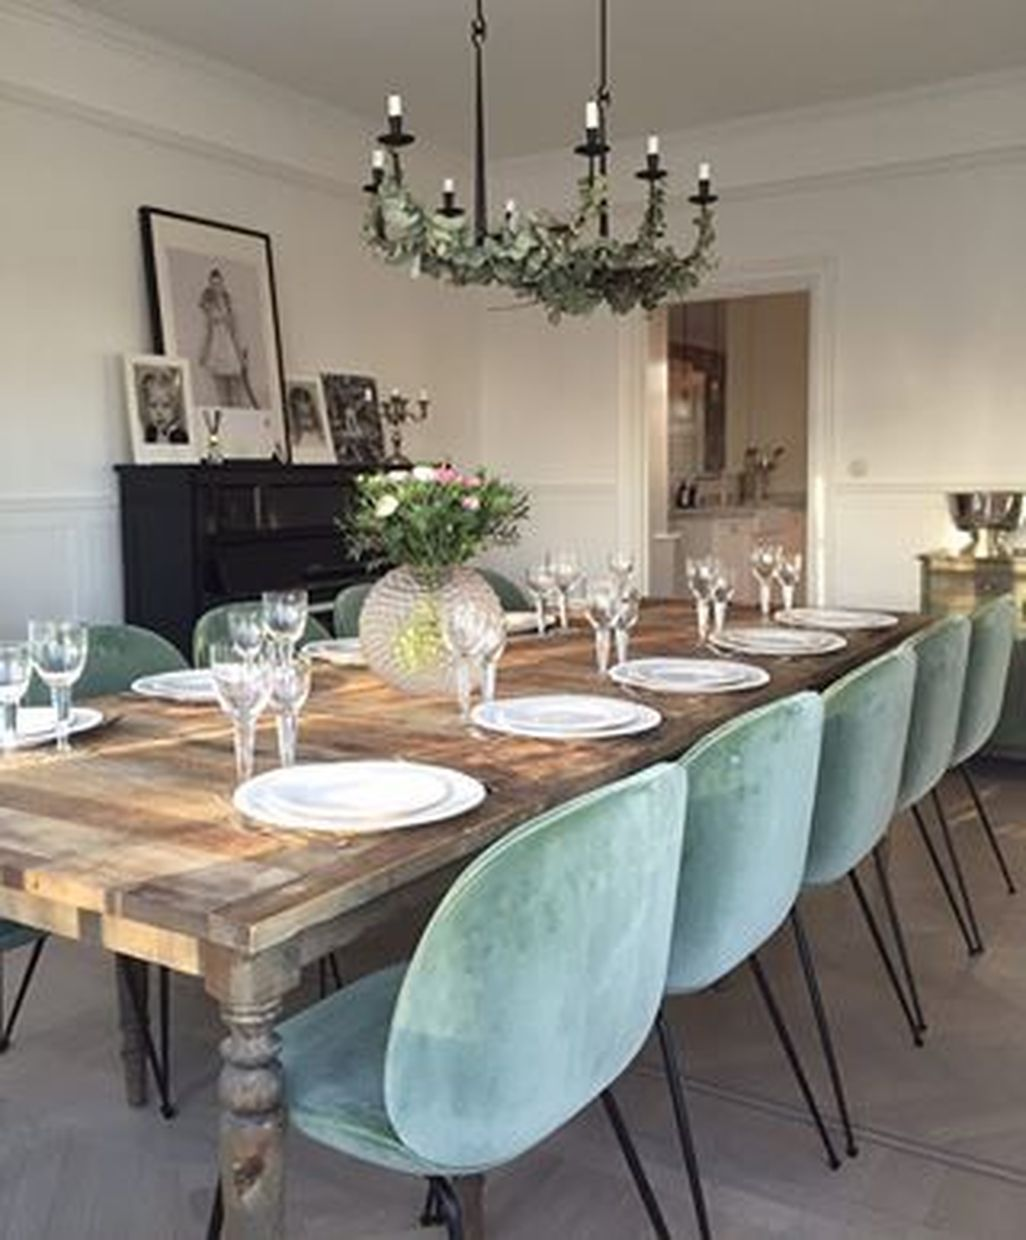 Dining Room Should Be A Retreat Away From The Hustle And Bustle Of Busy Modern Dinner Table Is A Dining Room Small Dining Room Table Decor Rustic Dining Room